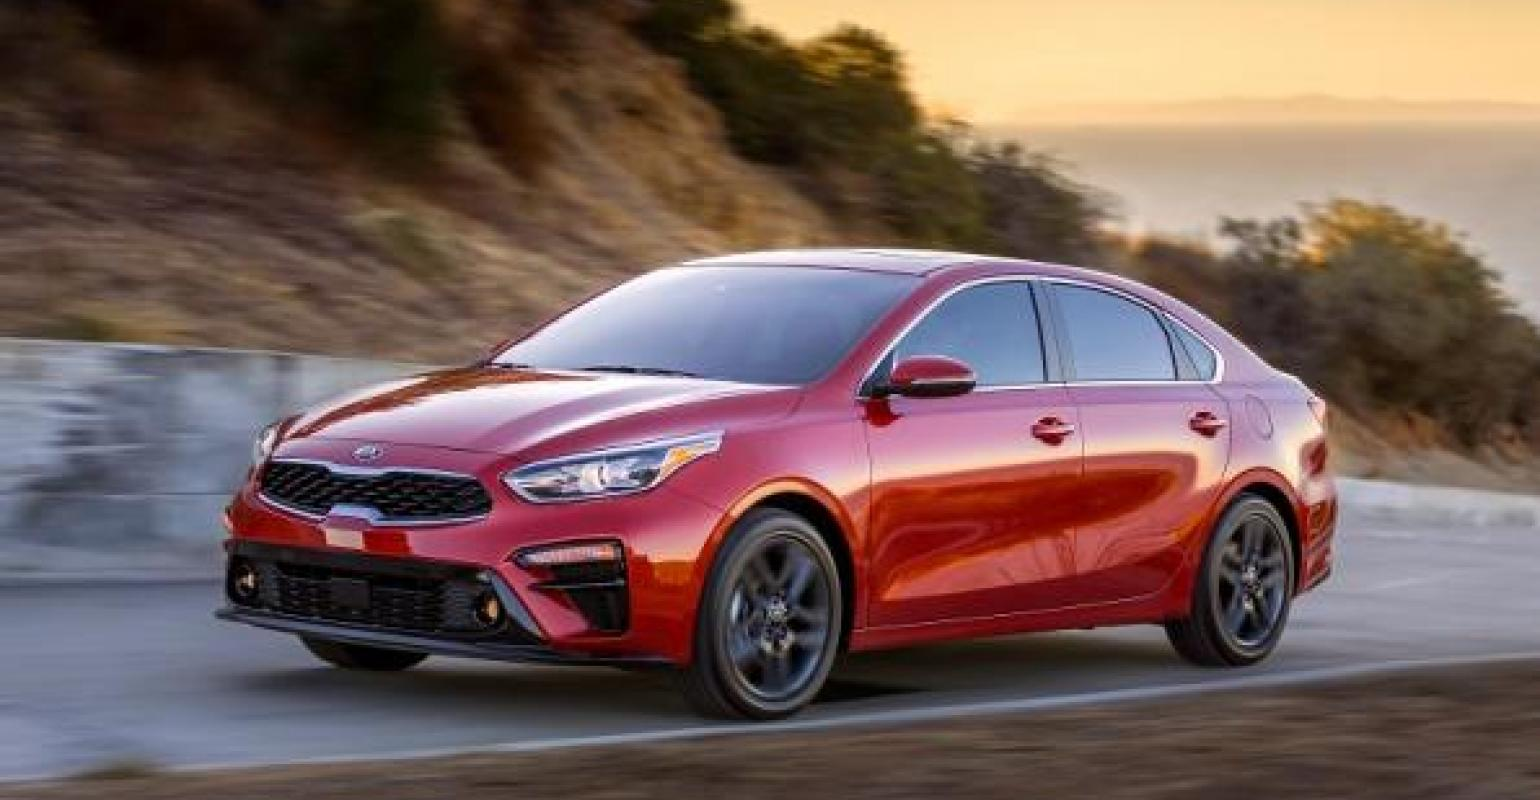 Kia Cars Not Dead Stinger Brand A Cuv Pickup Not On Table